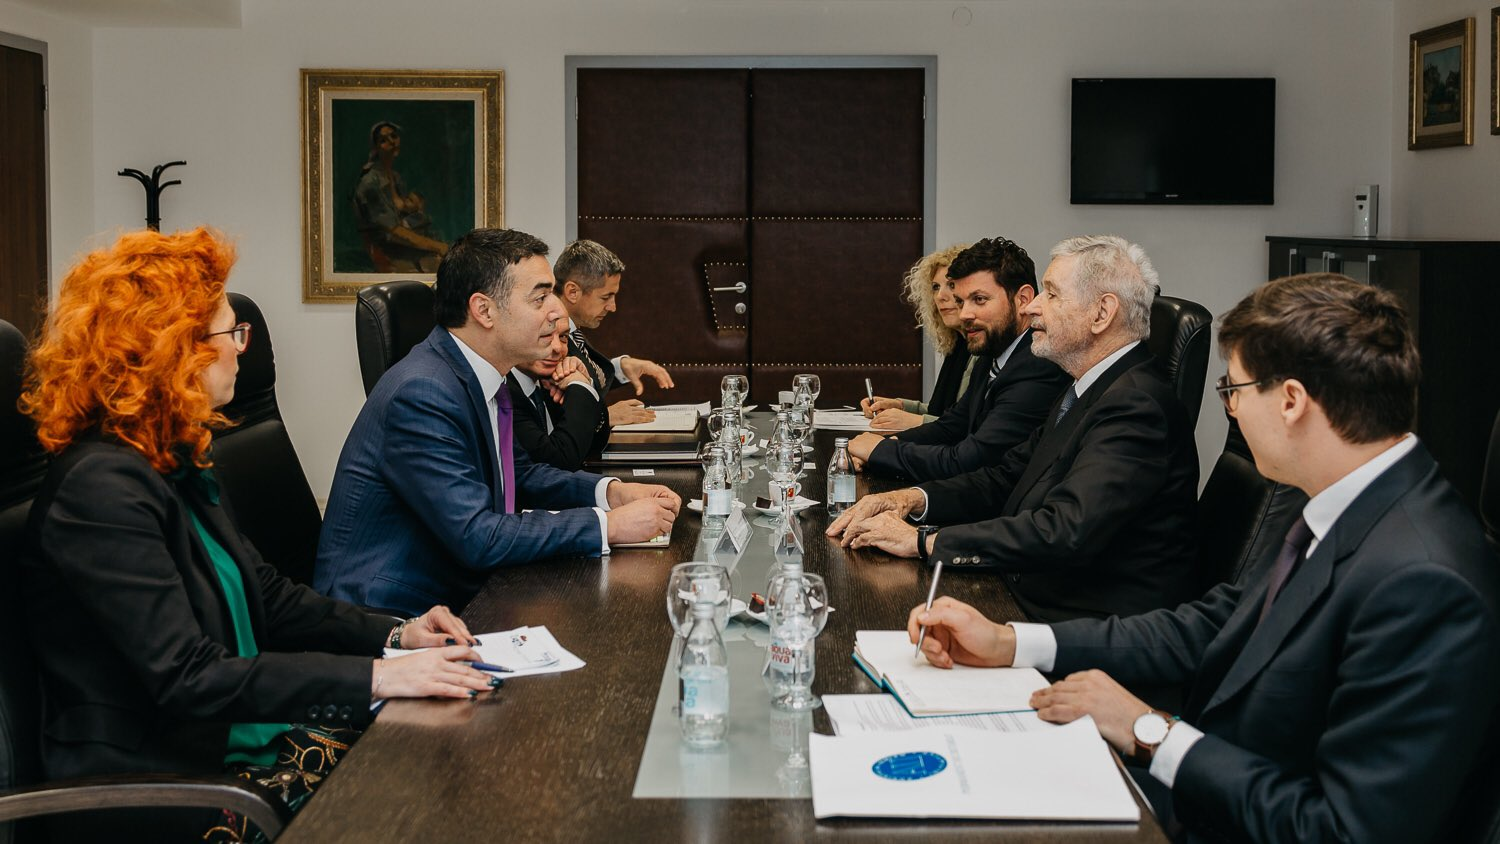 AII JOINT OFFICIAL VISIT TO THE REPUBLIC OF NORTH MACEDONIA - SKOPJE, 27-28 MARCH 2019